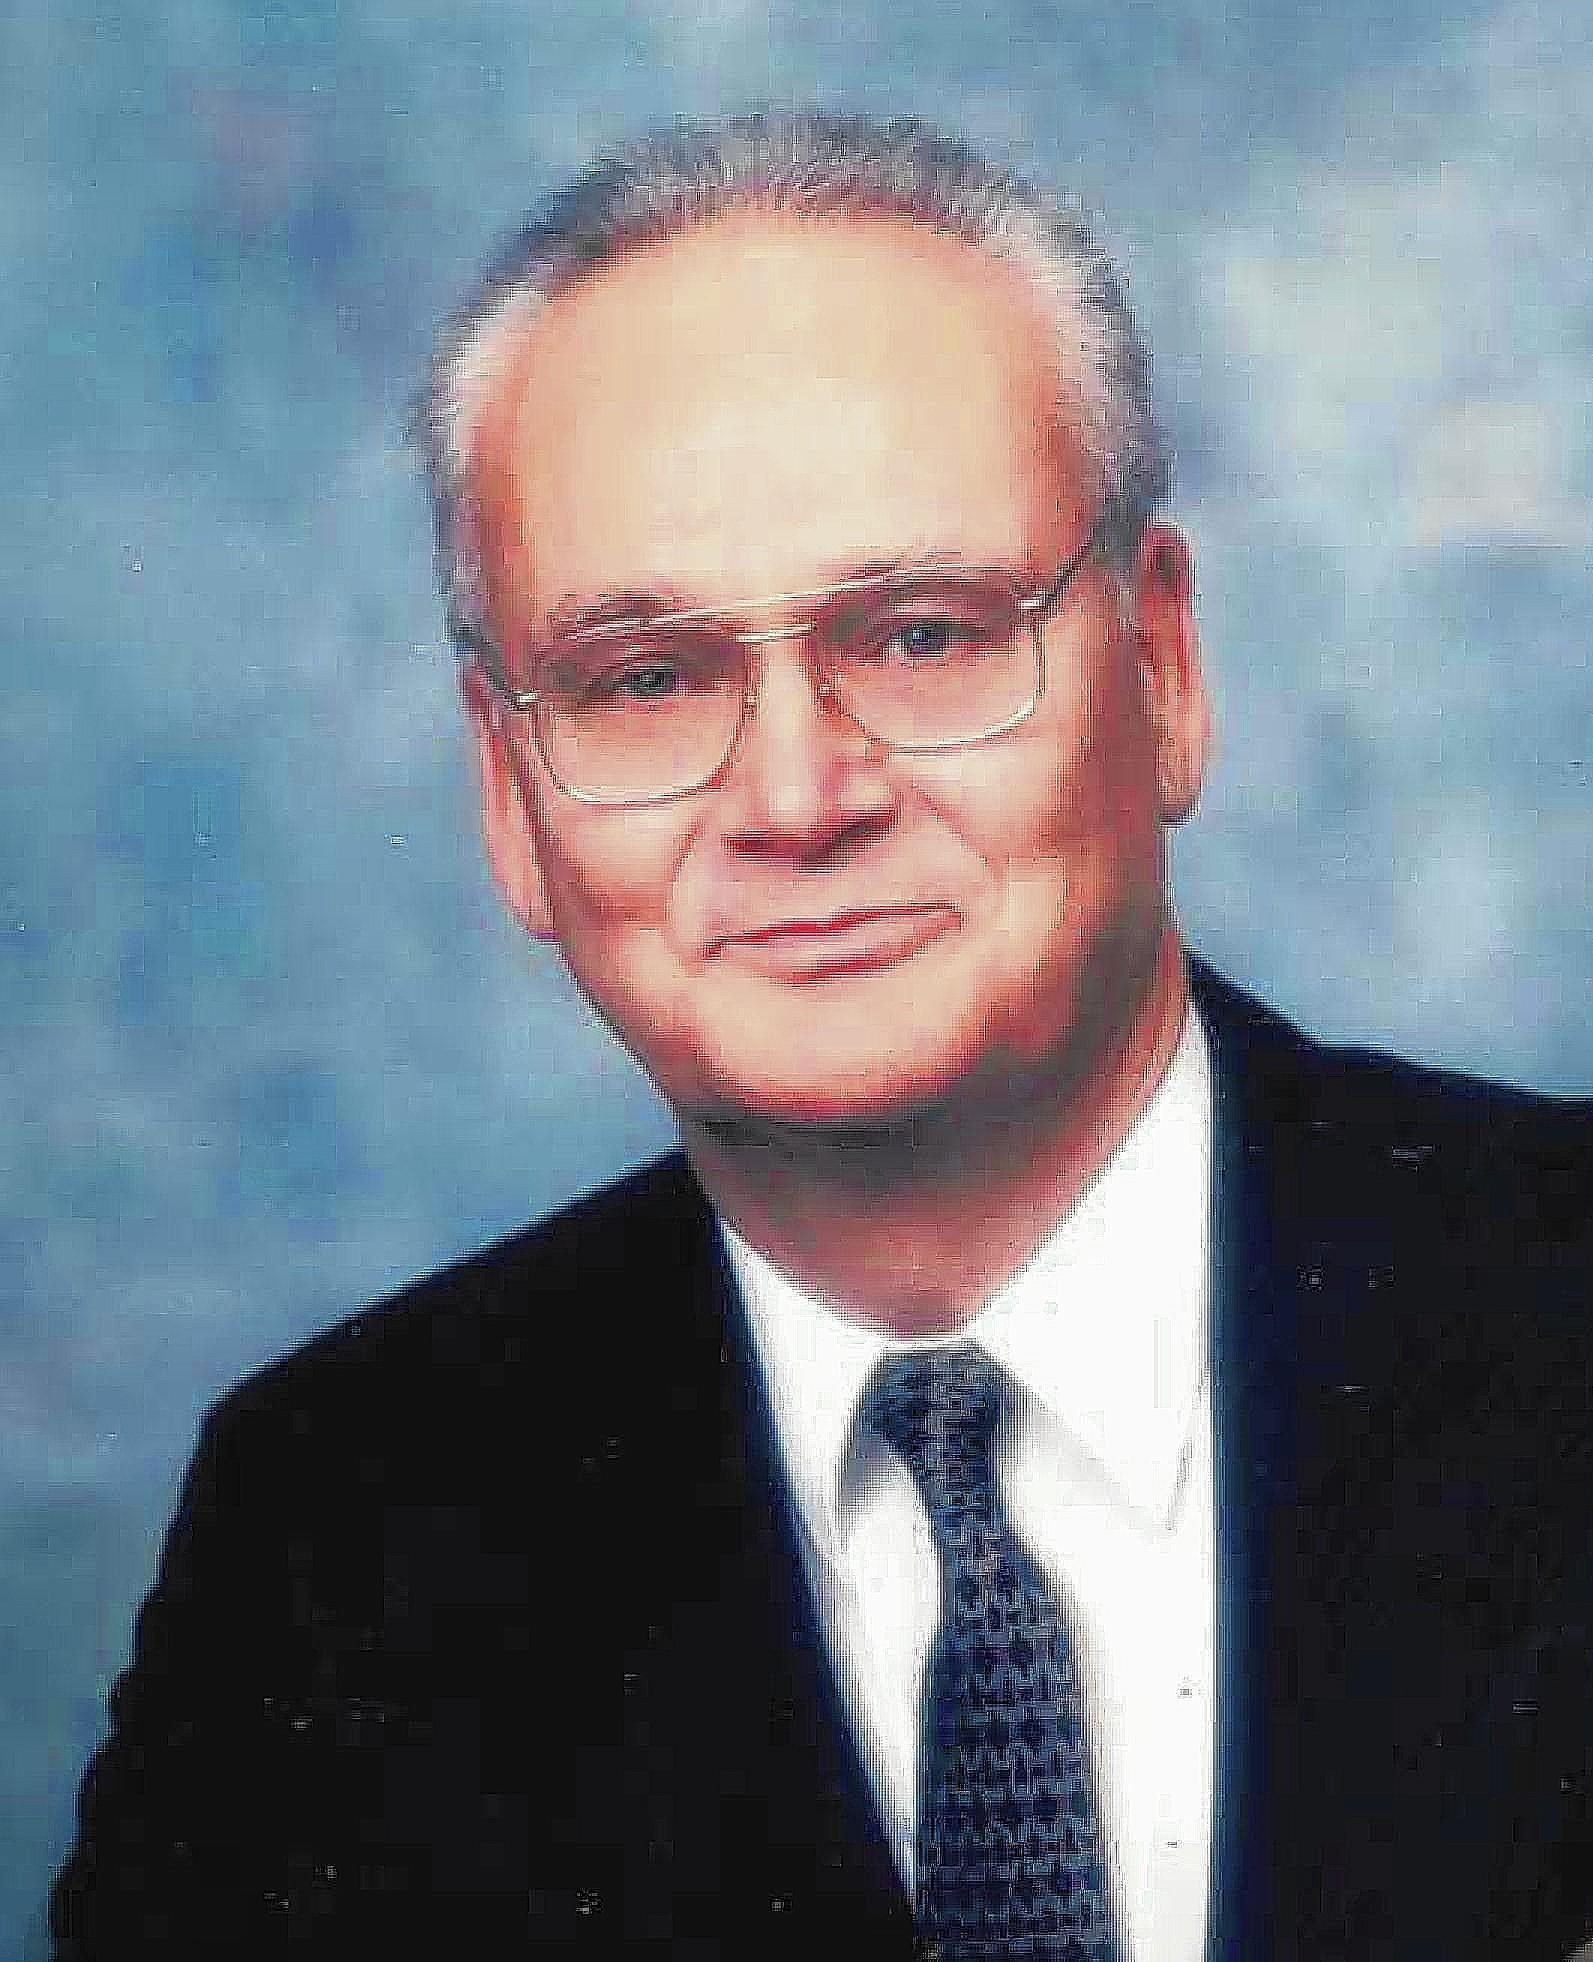 Georges R. Garinther